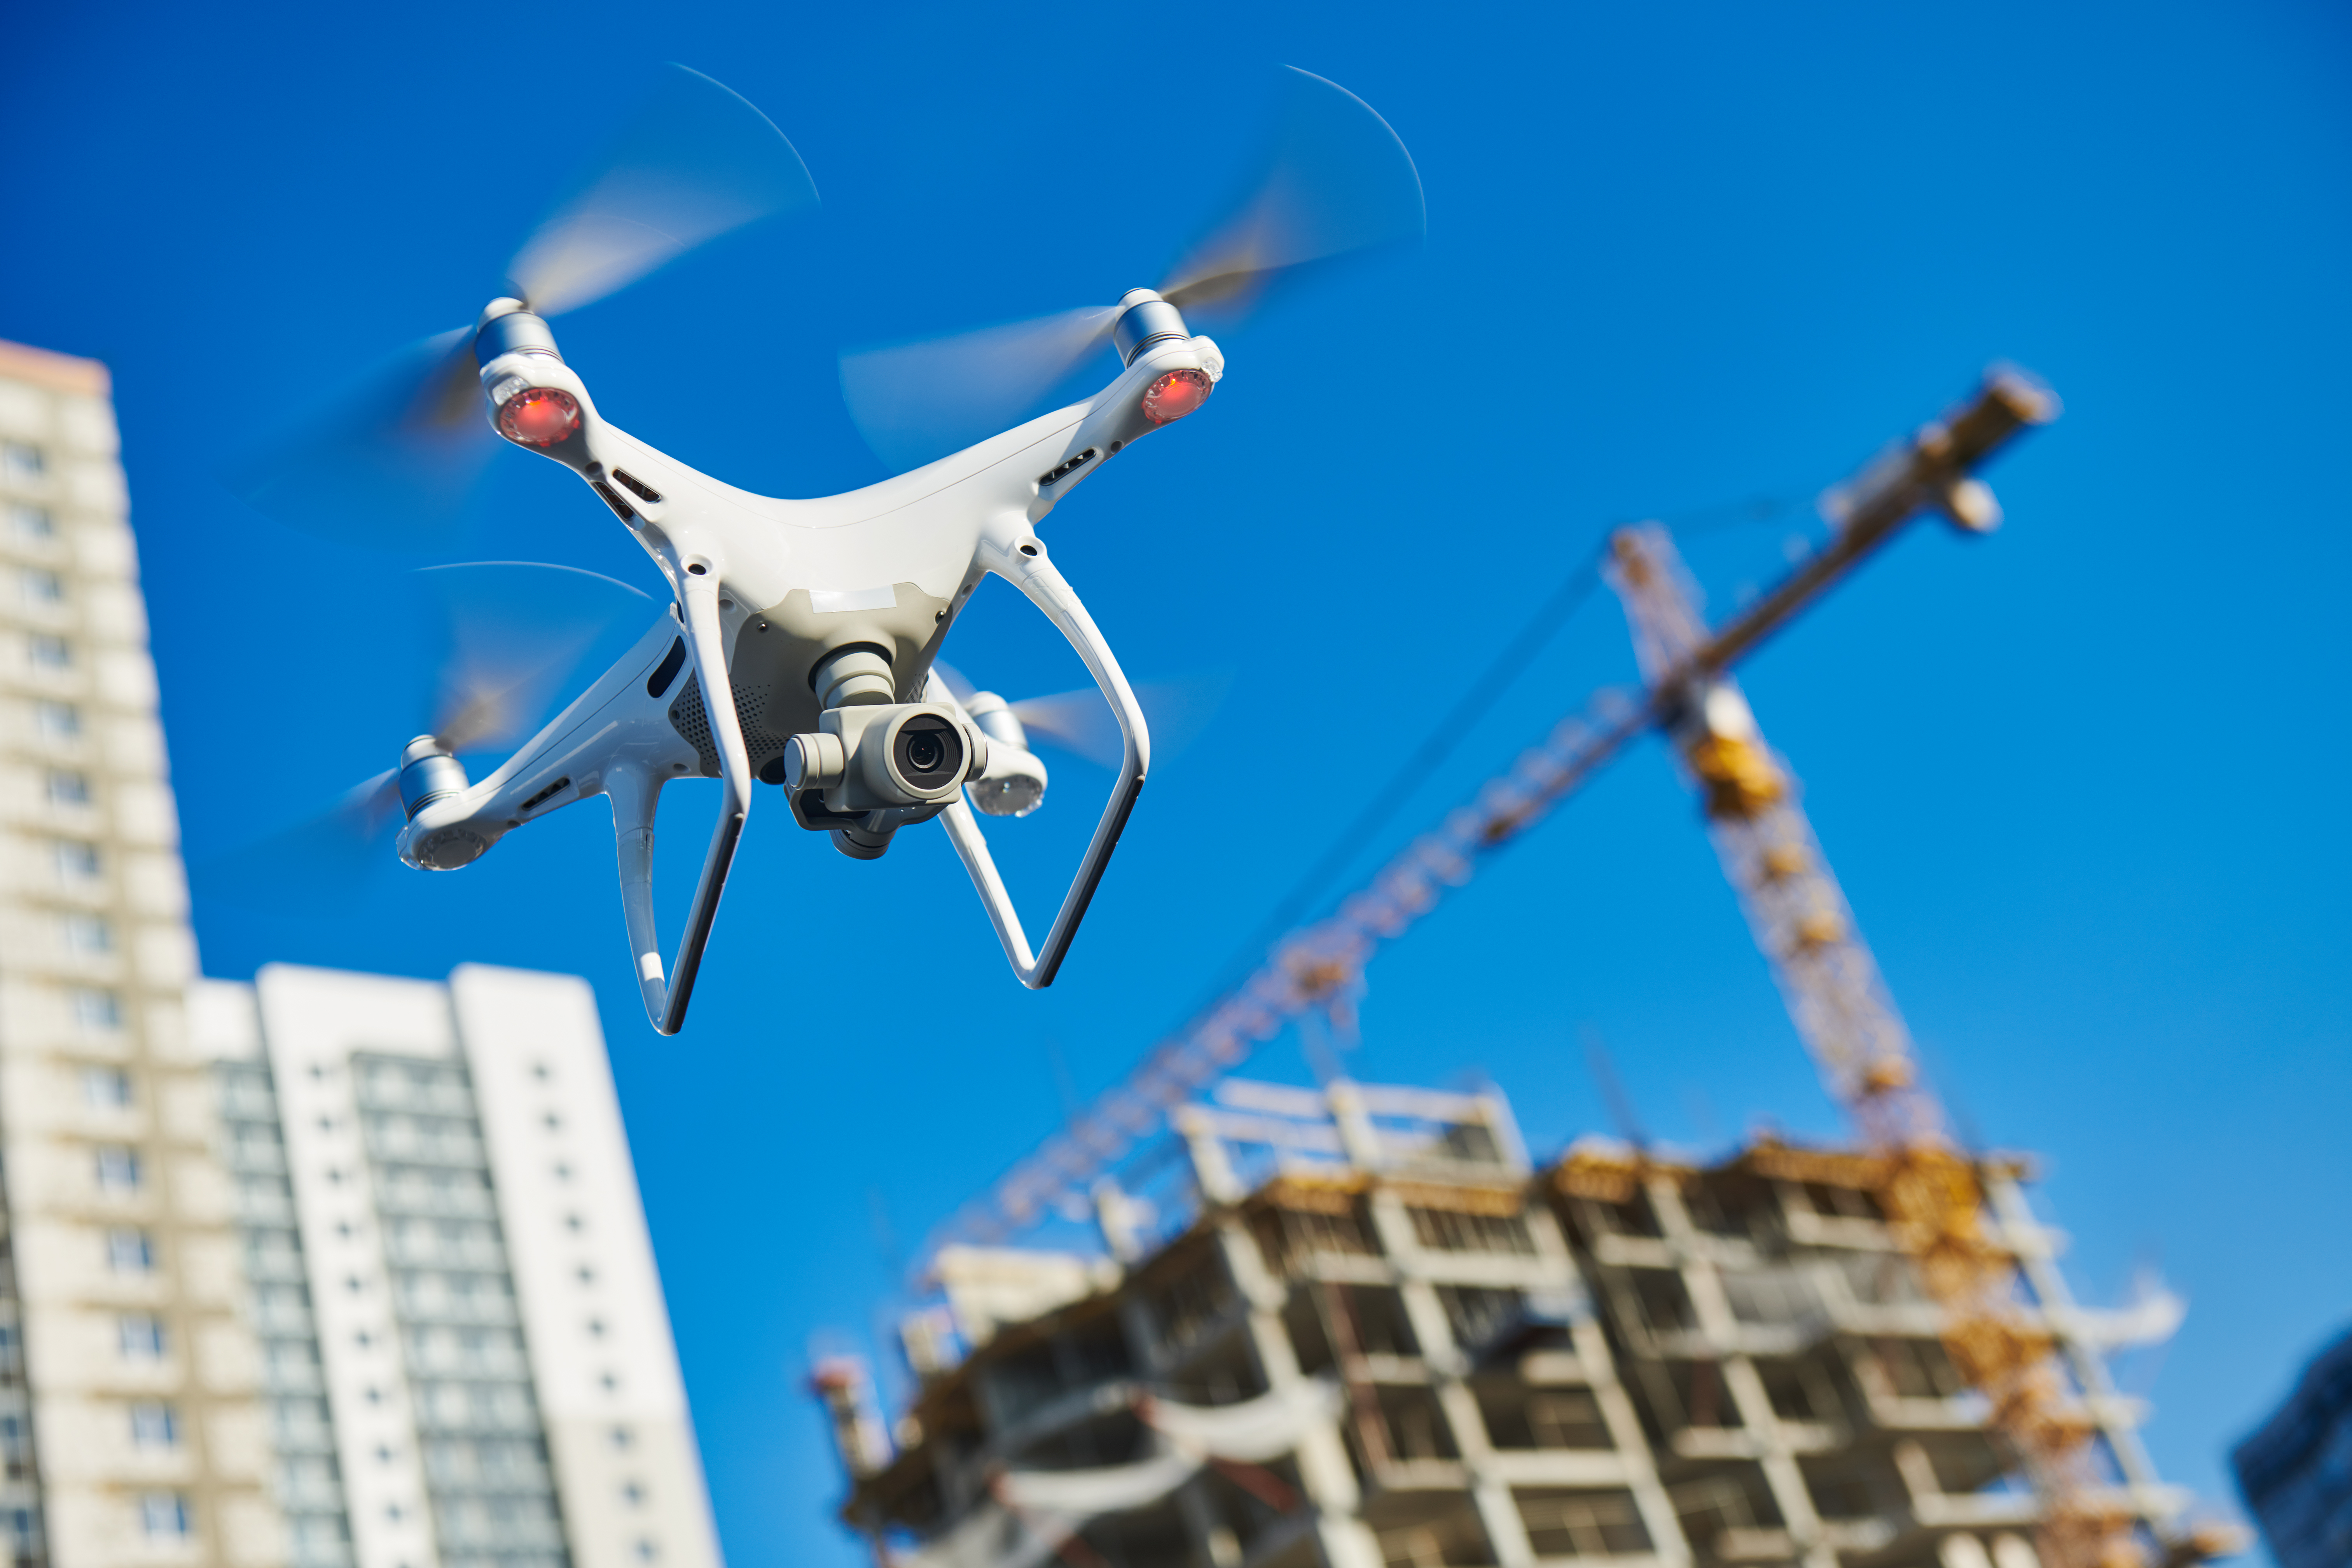 Drone flies over a construction site